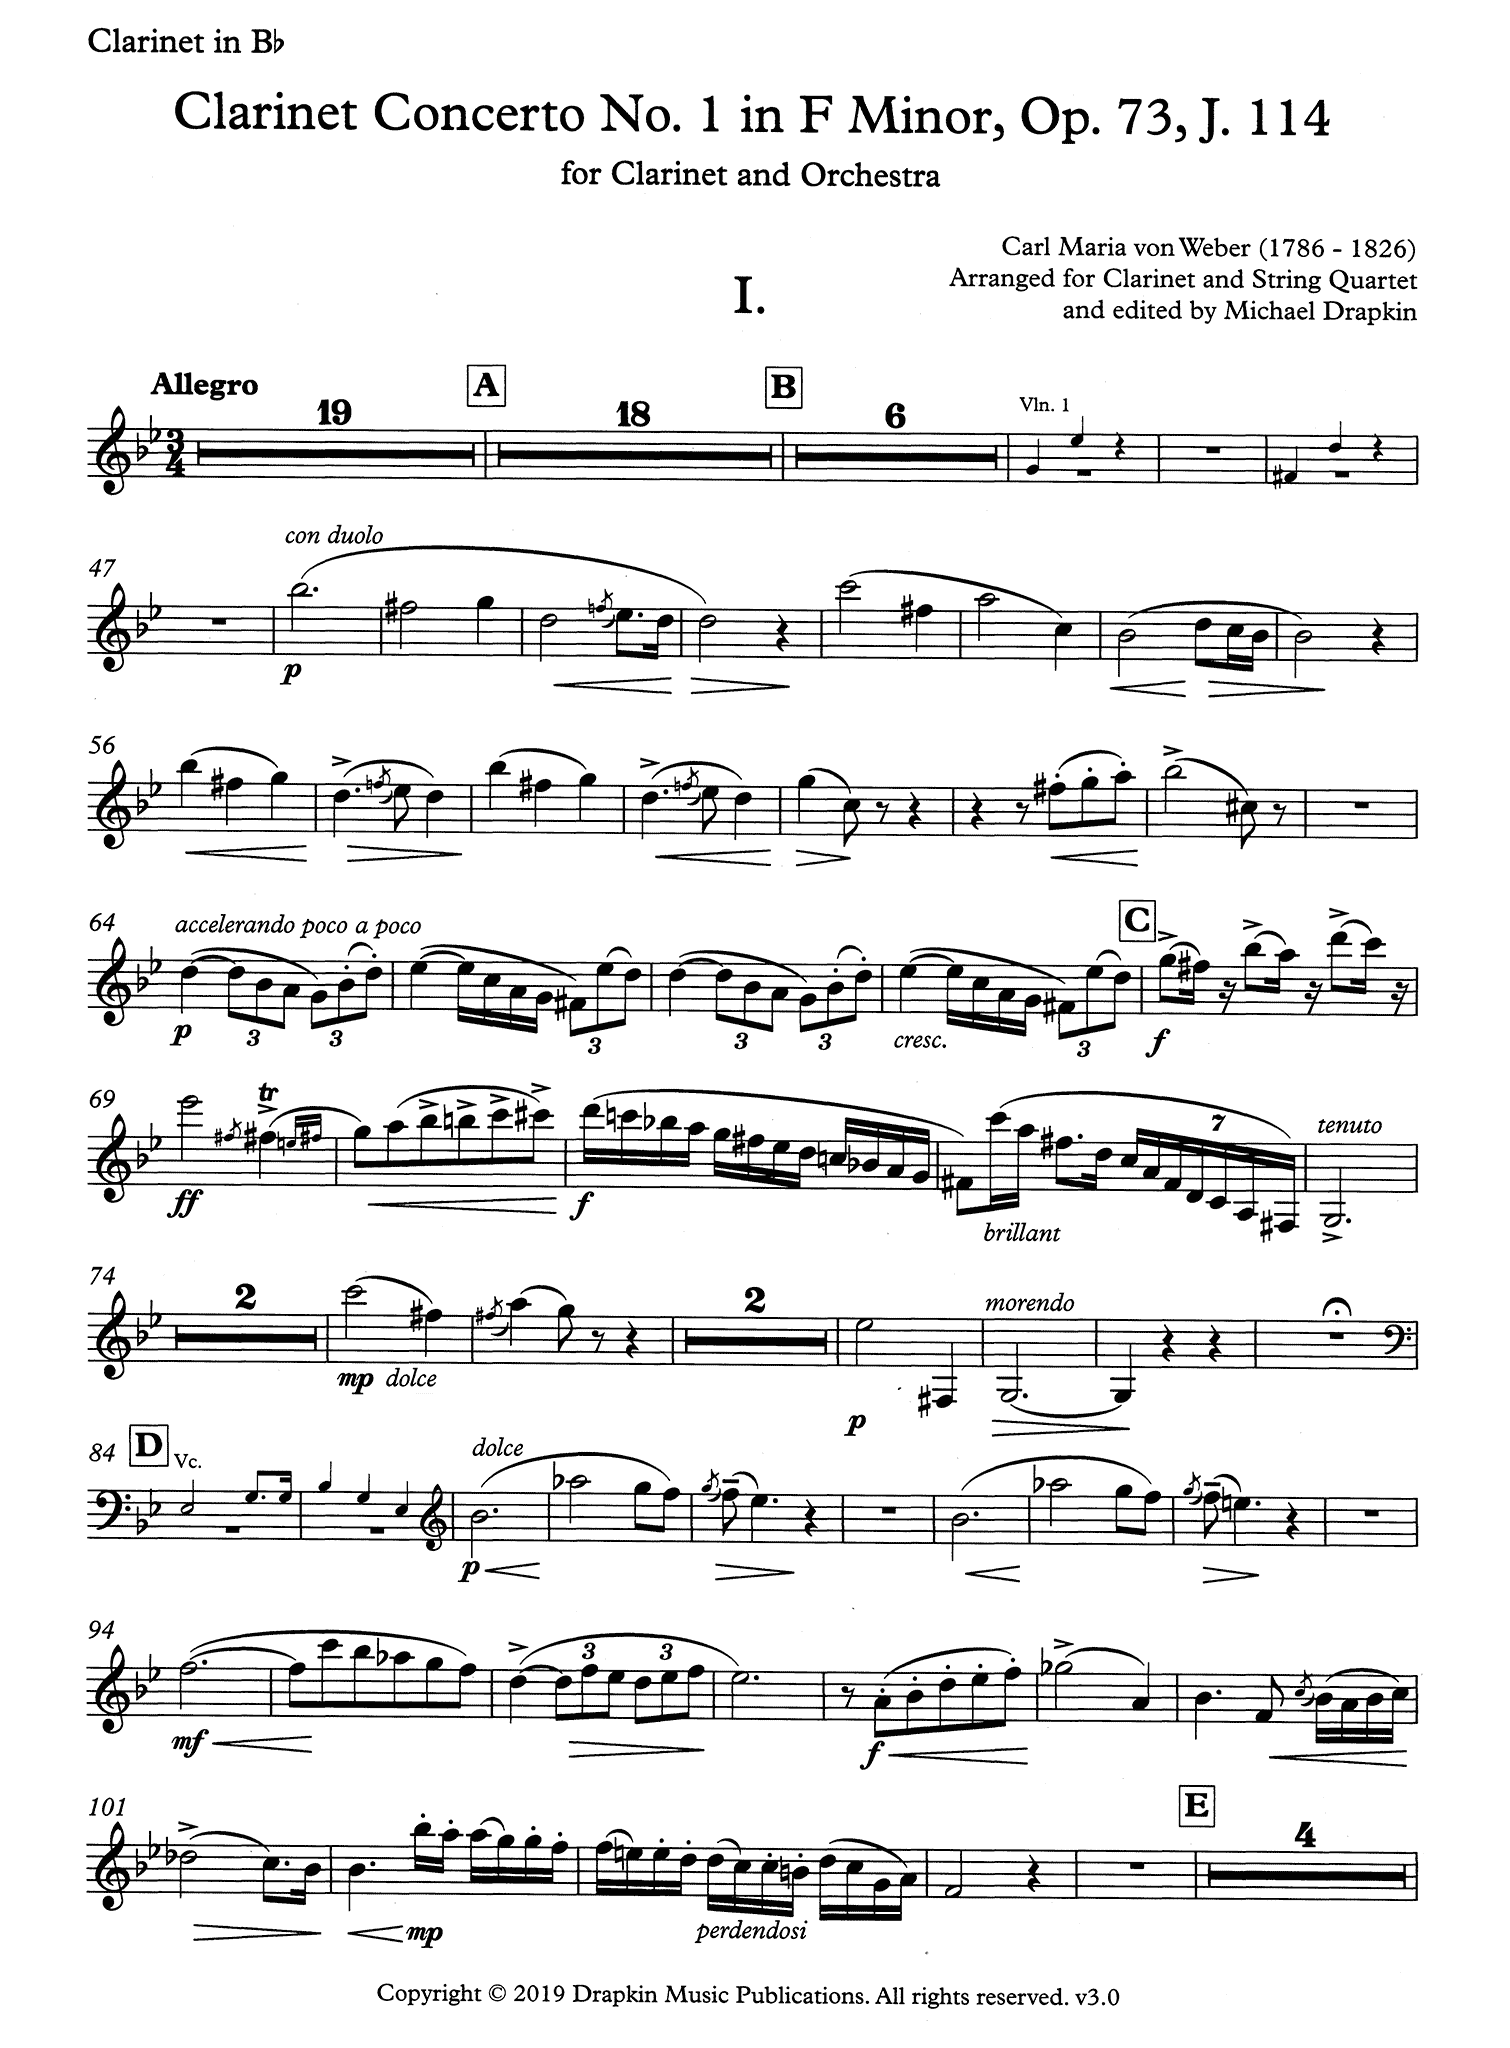 Clarinet Concerto No. 1, Op. 73 Clarinet part